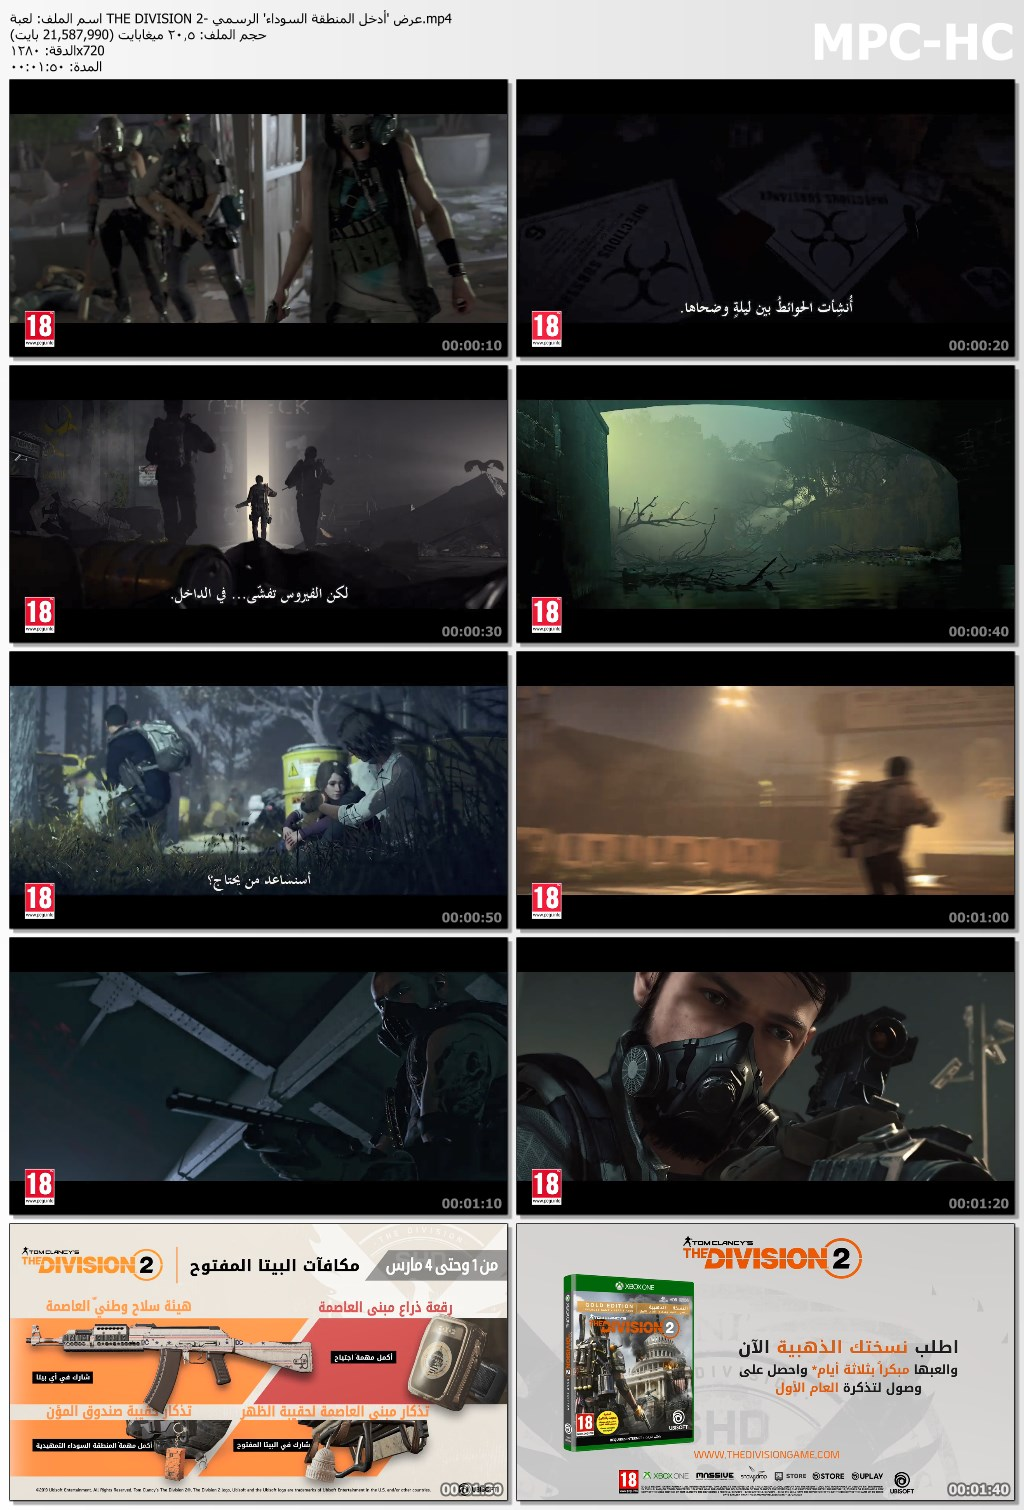 Division,2,the,العاب,اكشن,اعلان,فيديو,trailer,vgame